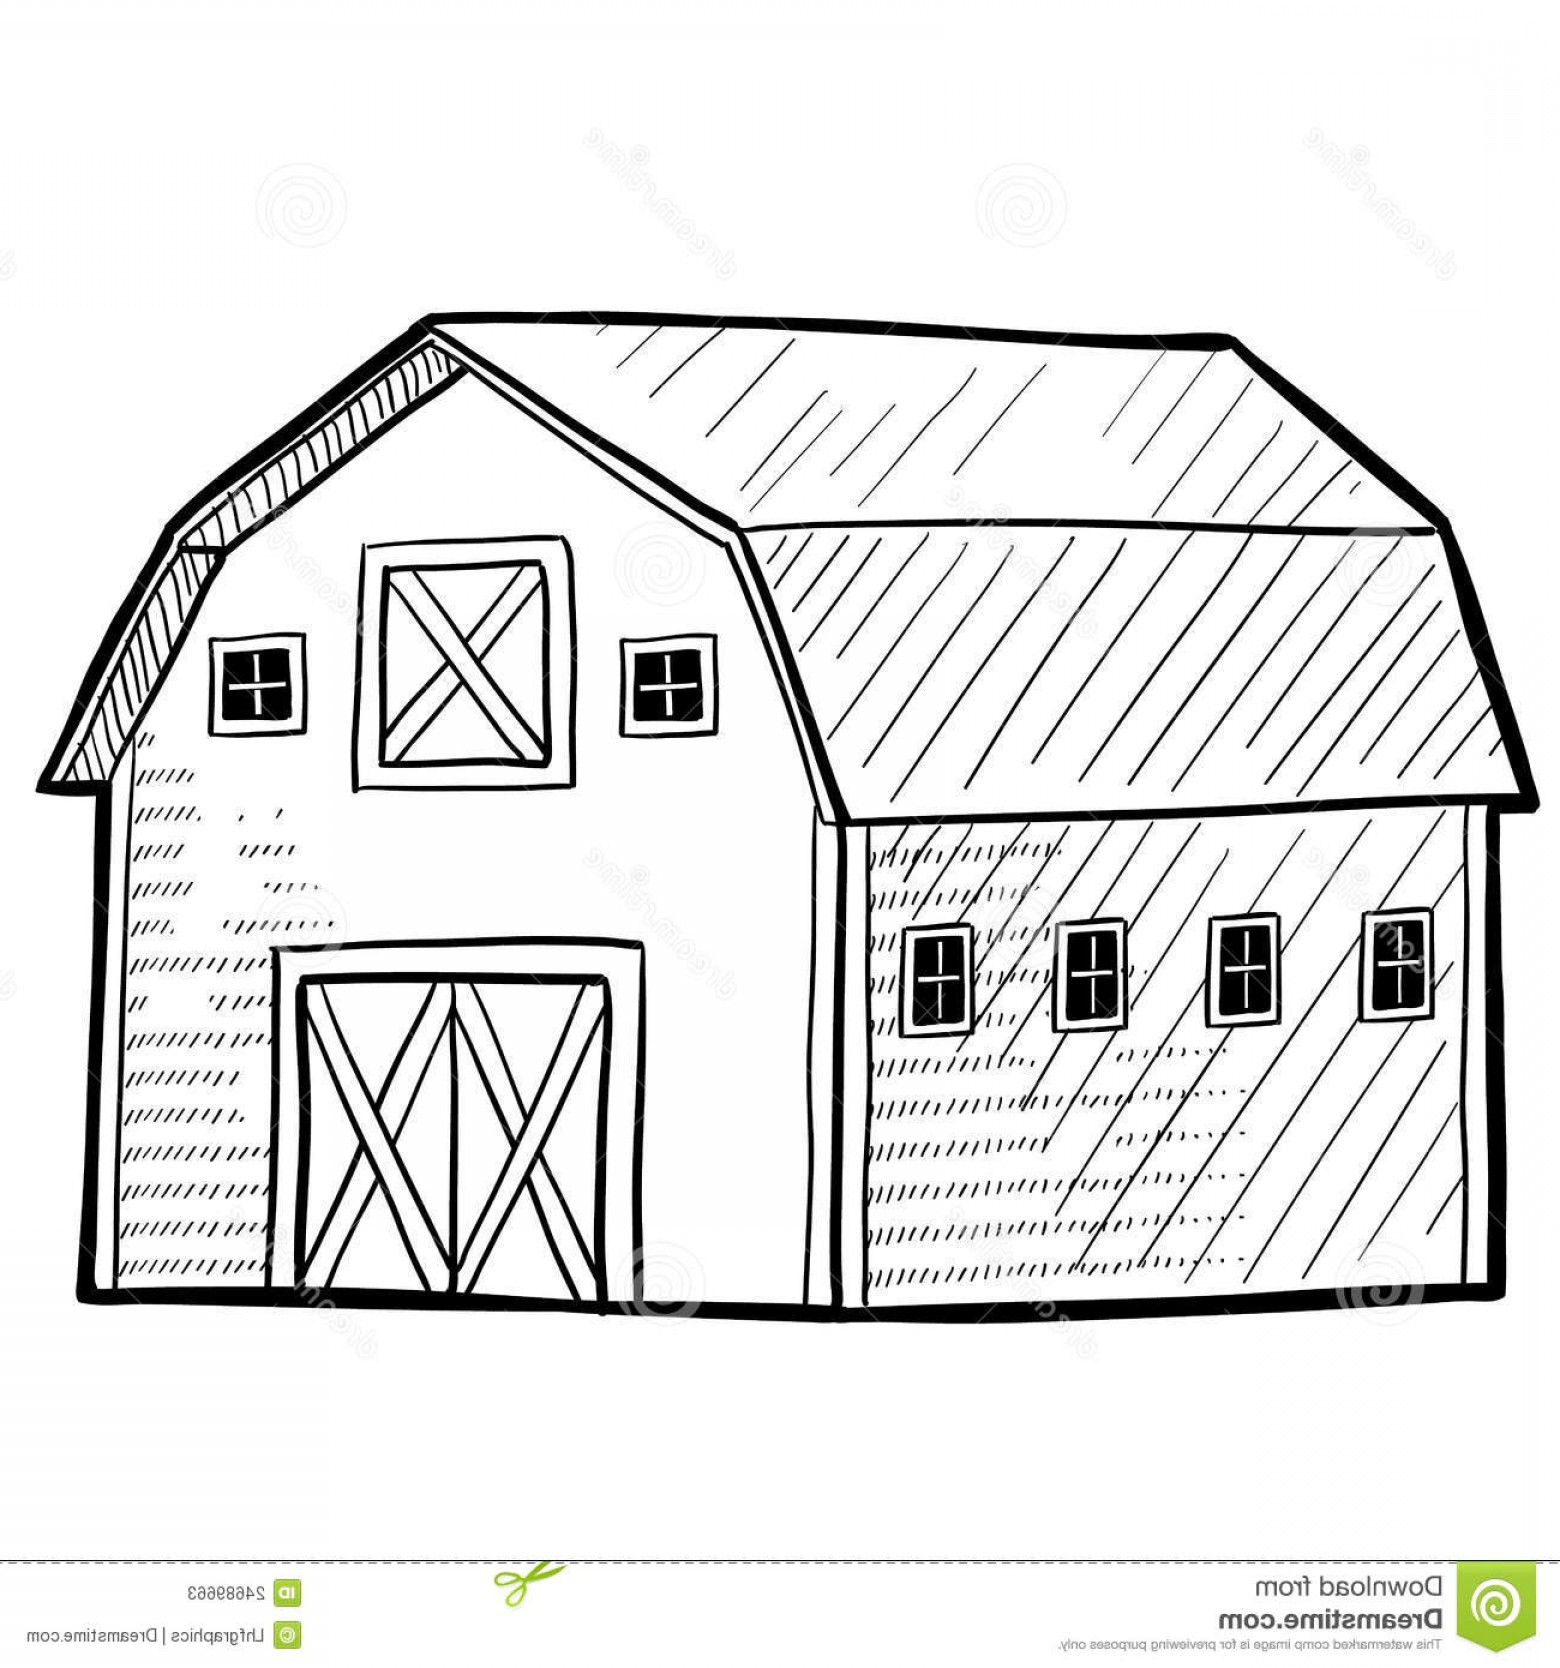 Barn Outline Vector: Stock Photos Dutch Barn Sketch Image